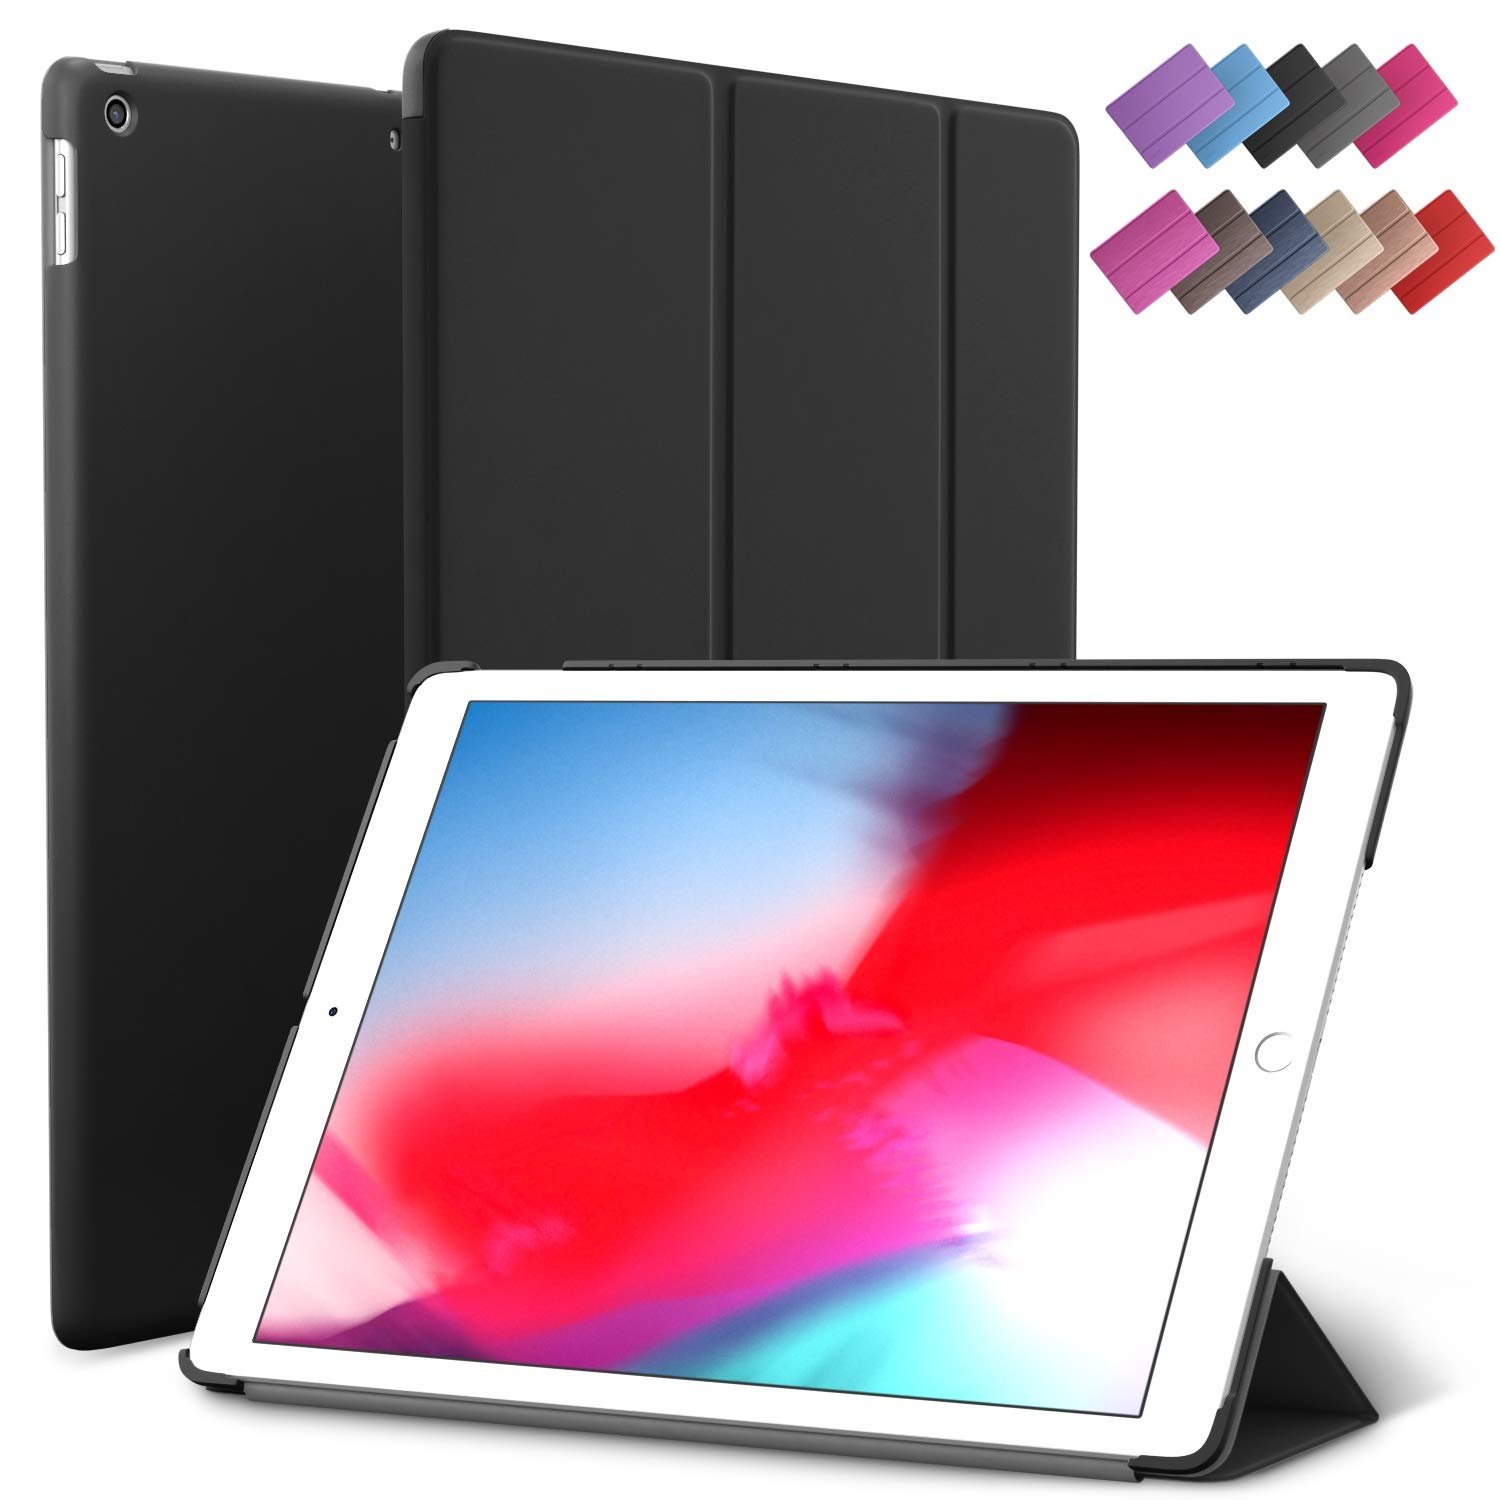 iPad Mini 5 case, ROARTZ Black Slim Fit Smart Rubber Coated Folio Case Hard Cover Light-Weight Wake/Sleep for Apple iPad Mini 5th Generation 2019 Model A2133 A2124 A2126 7.9-inch D